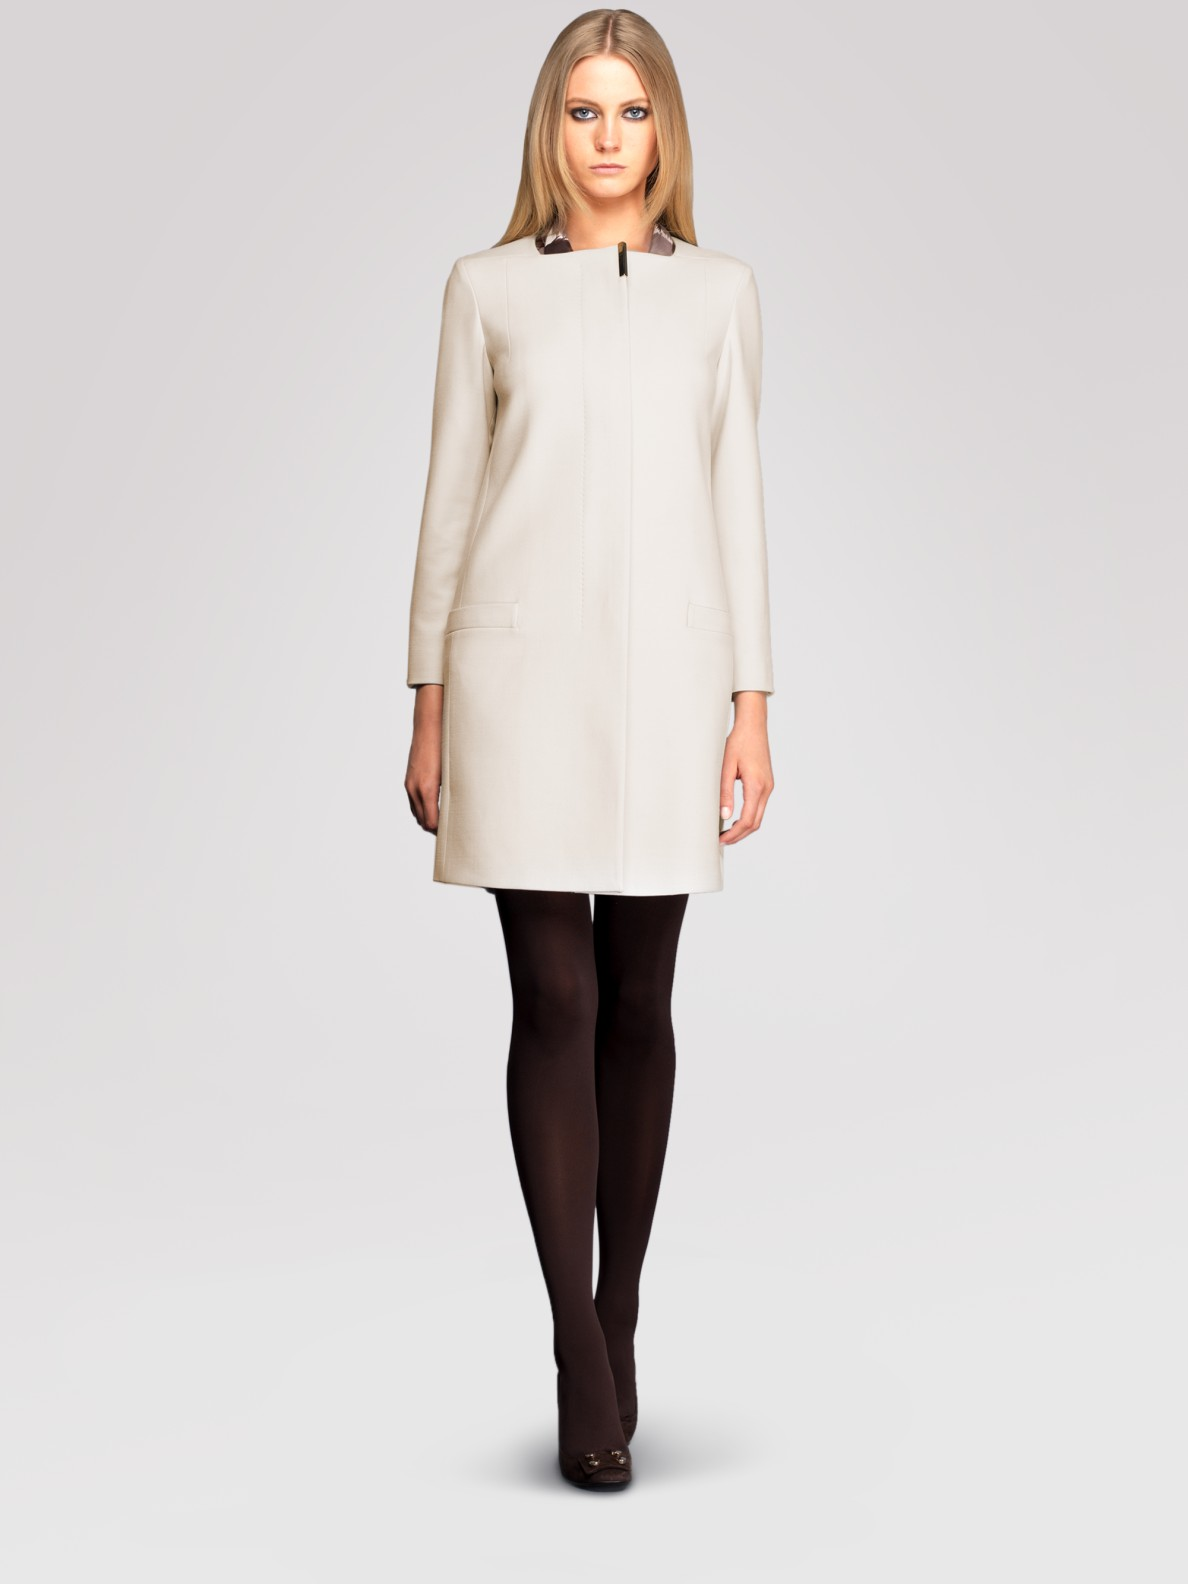 Gucci Collarless Stretch Wool Coat in White | Lyst